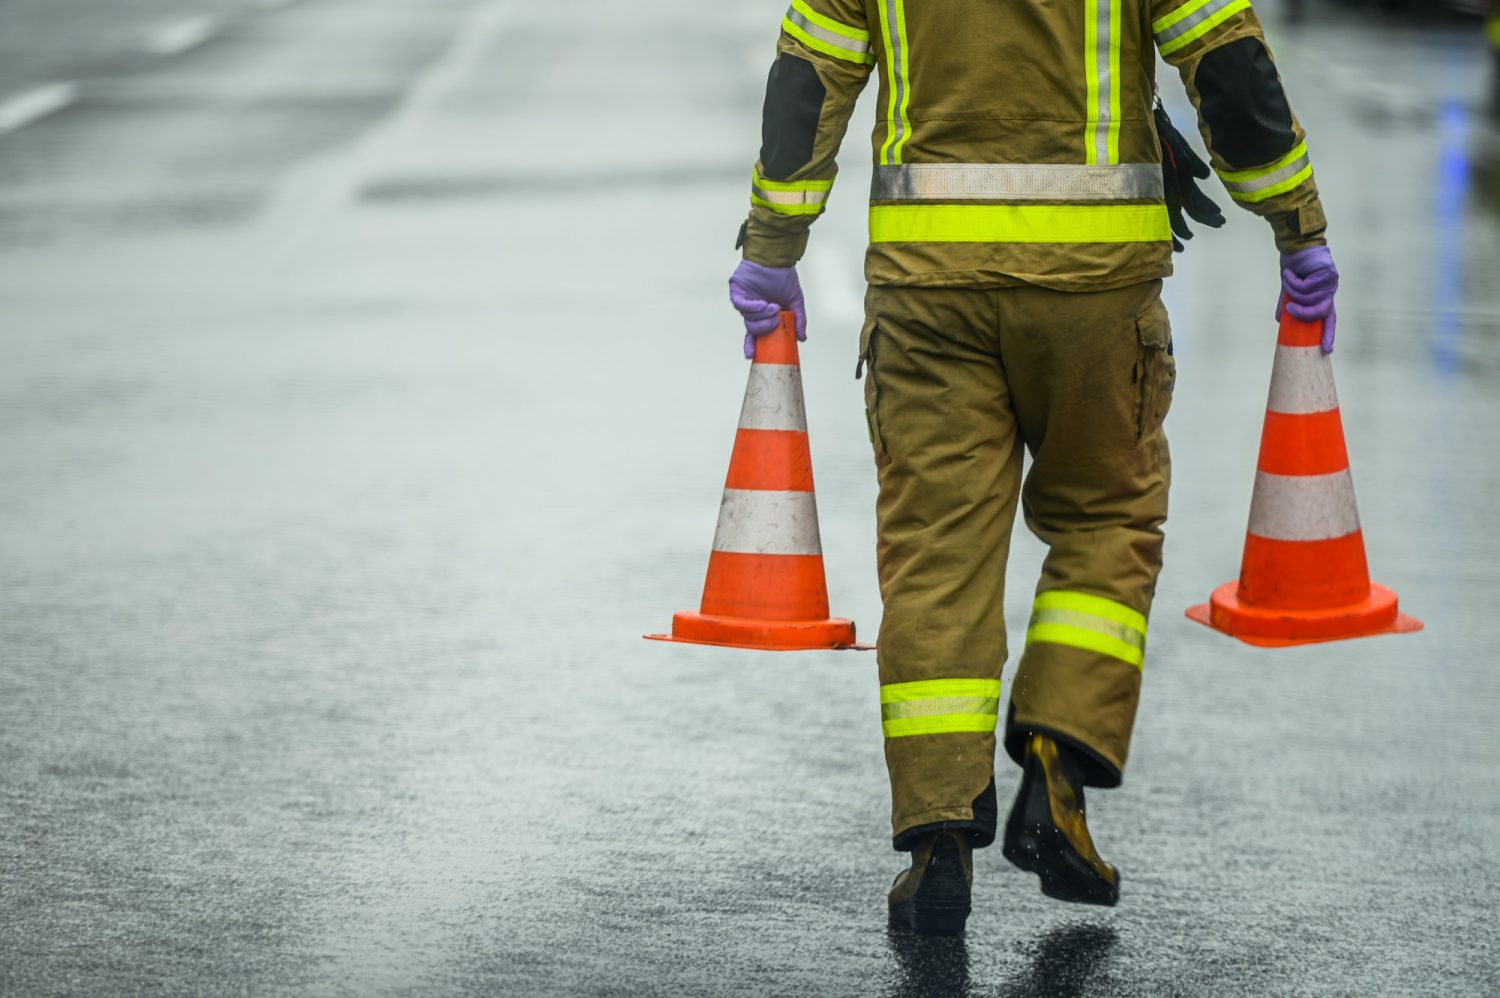 Highway Worker Preparing For Road Closure Moving Two Traffic Cones